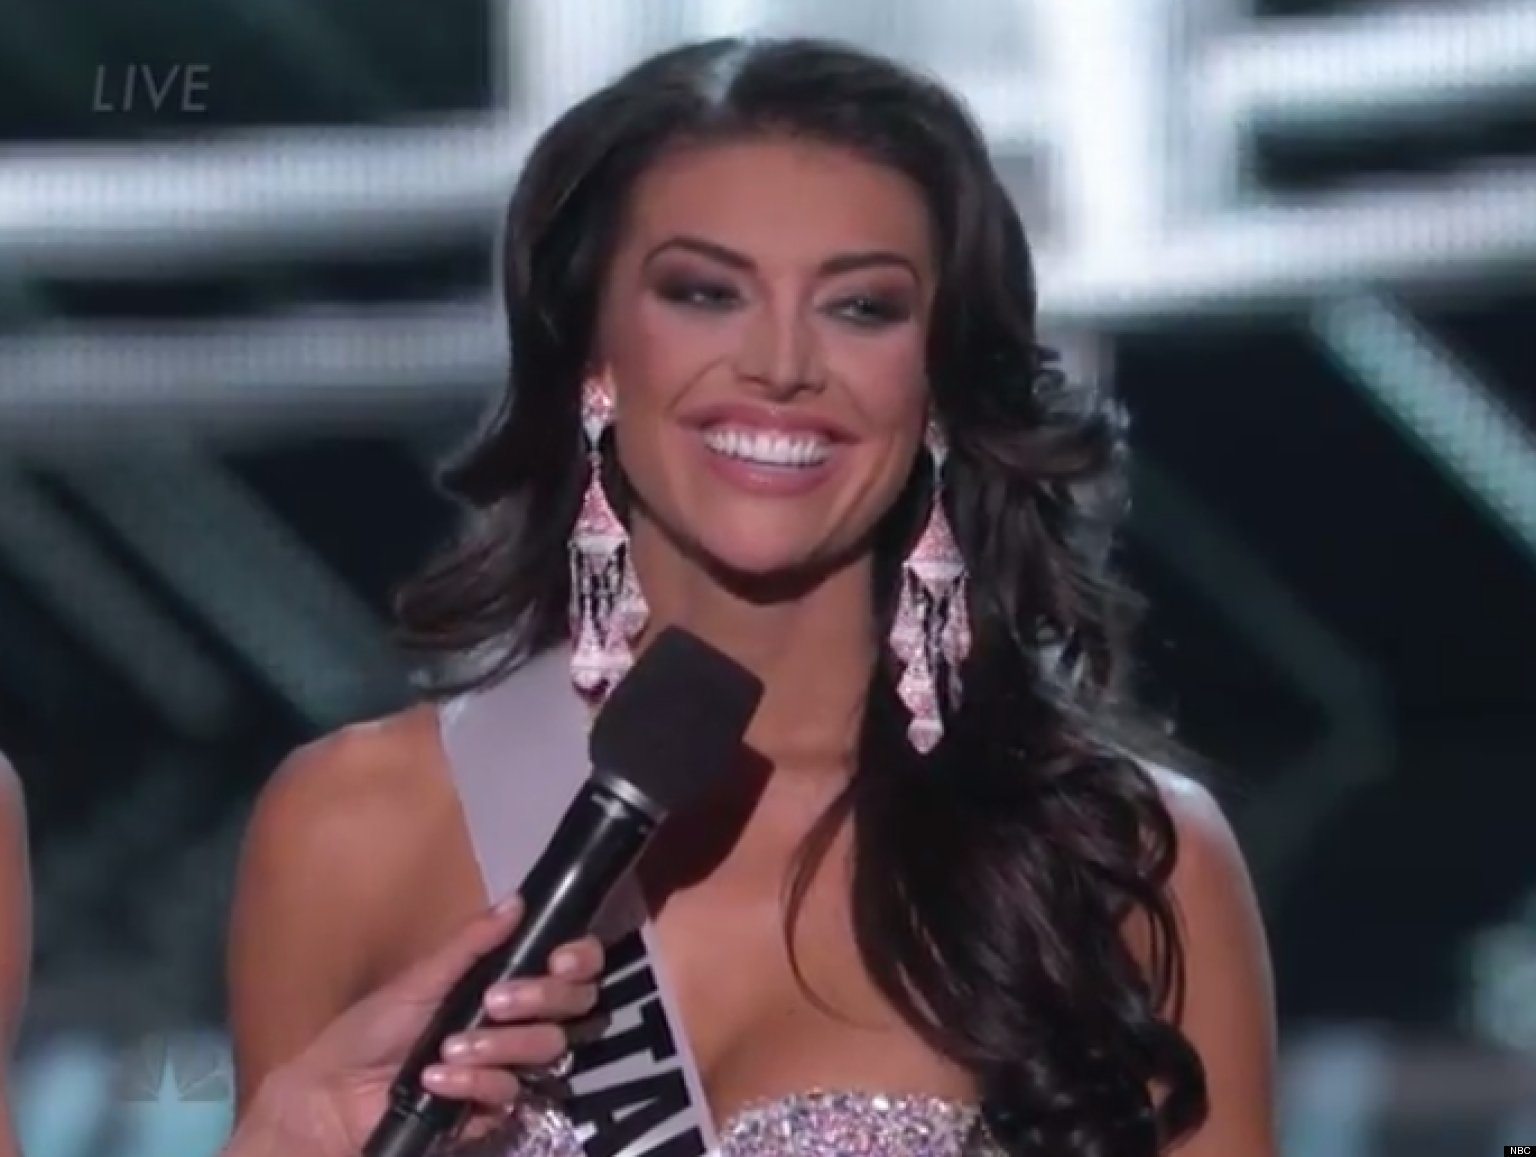 WATCH: Miss Utah Fumbles Interview Question at Miss USA